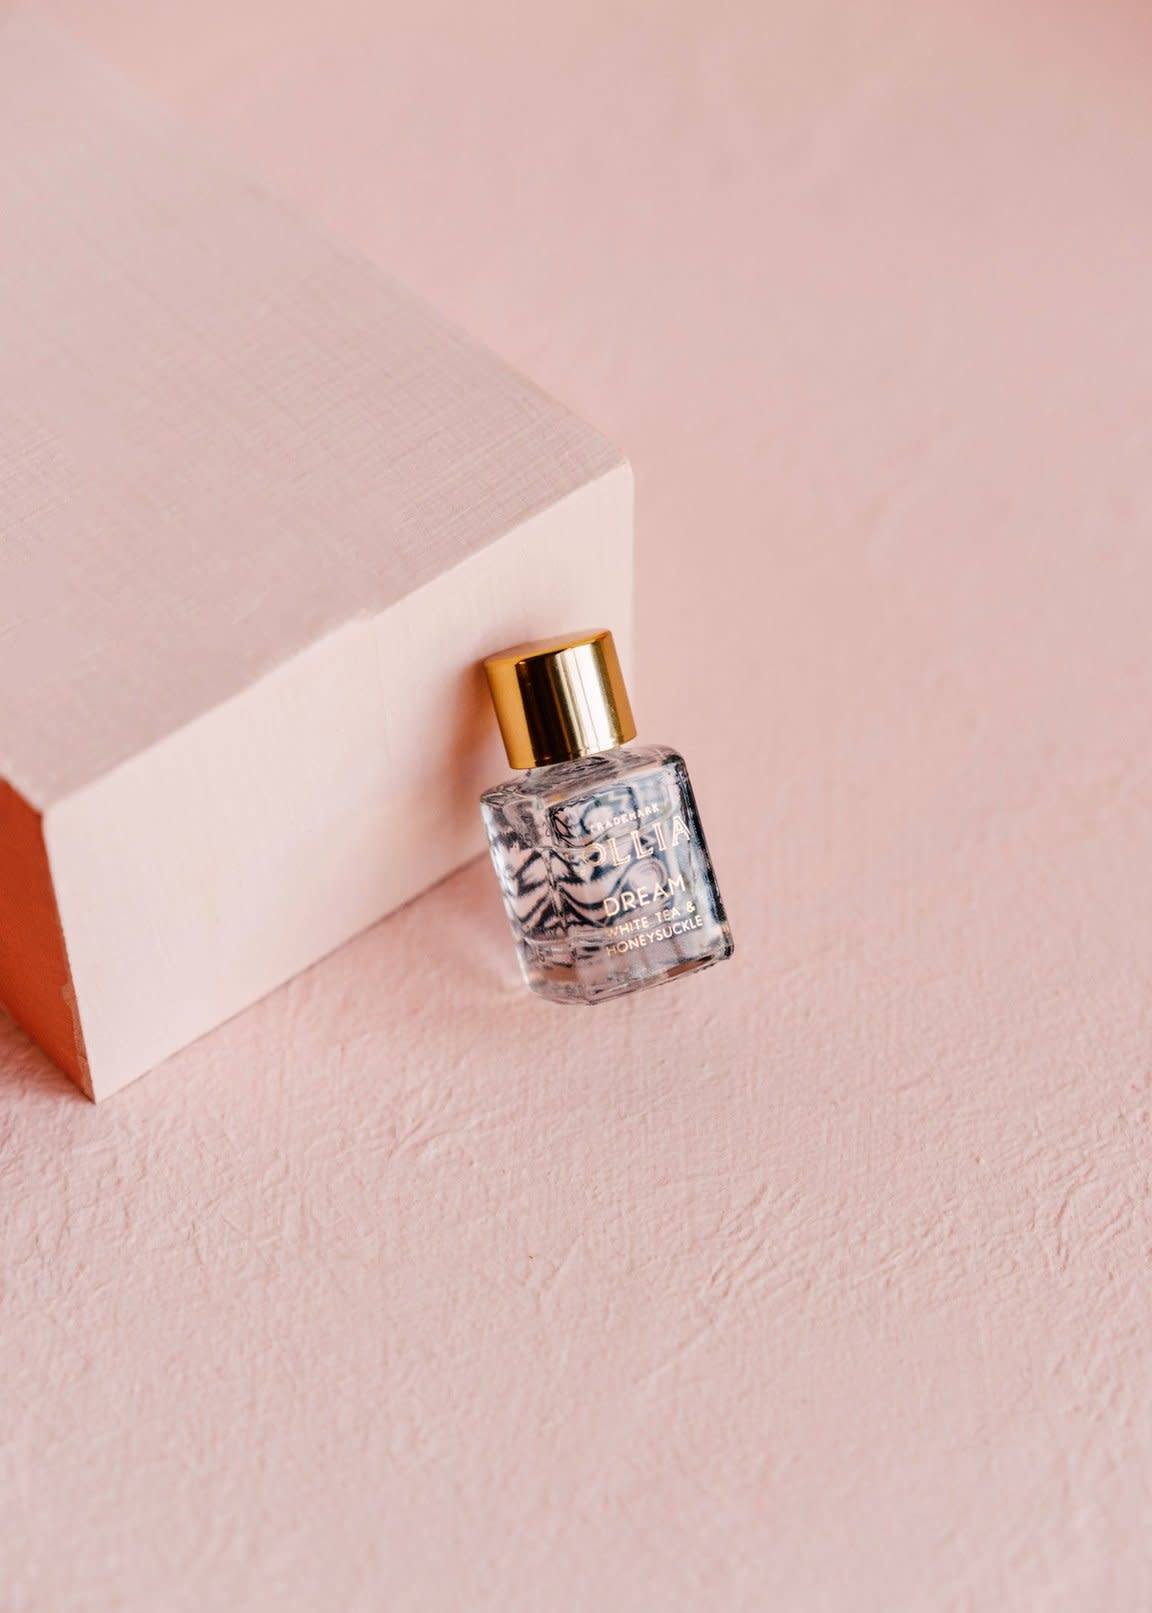 Lollia Dream Little Luxe Parfum